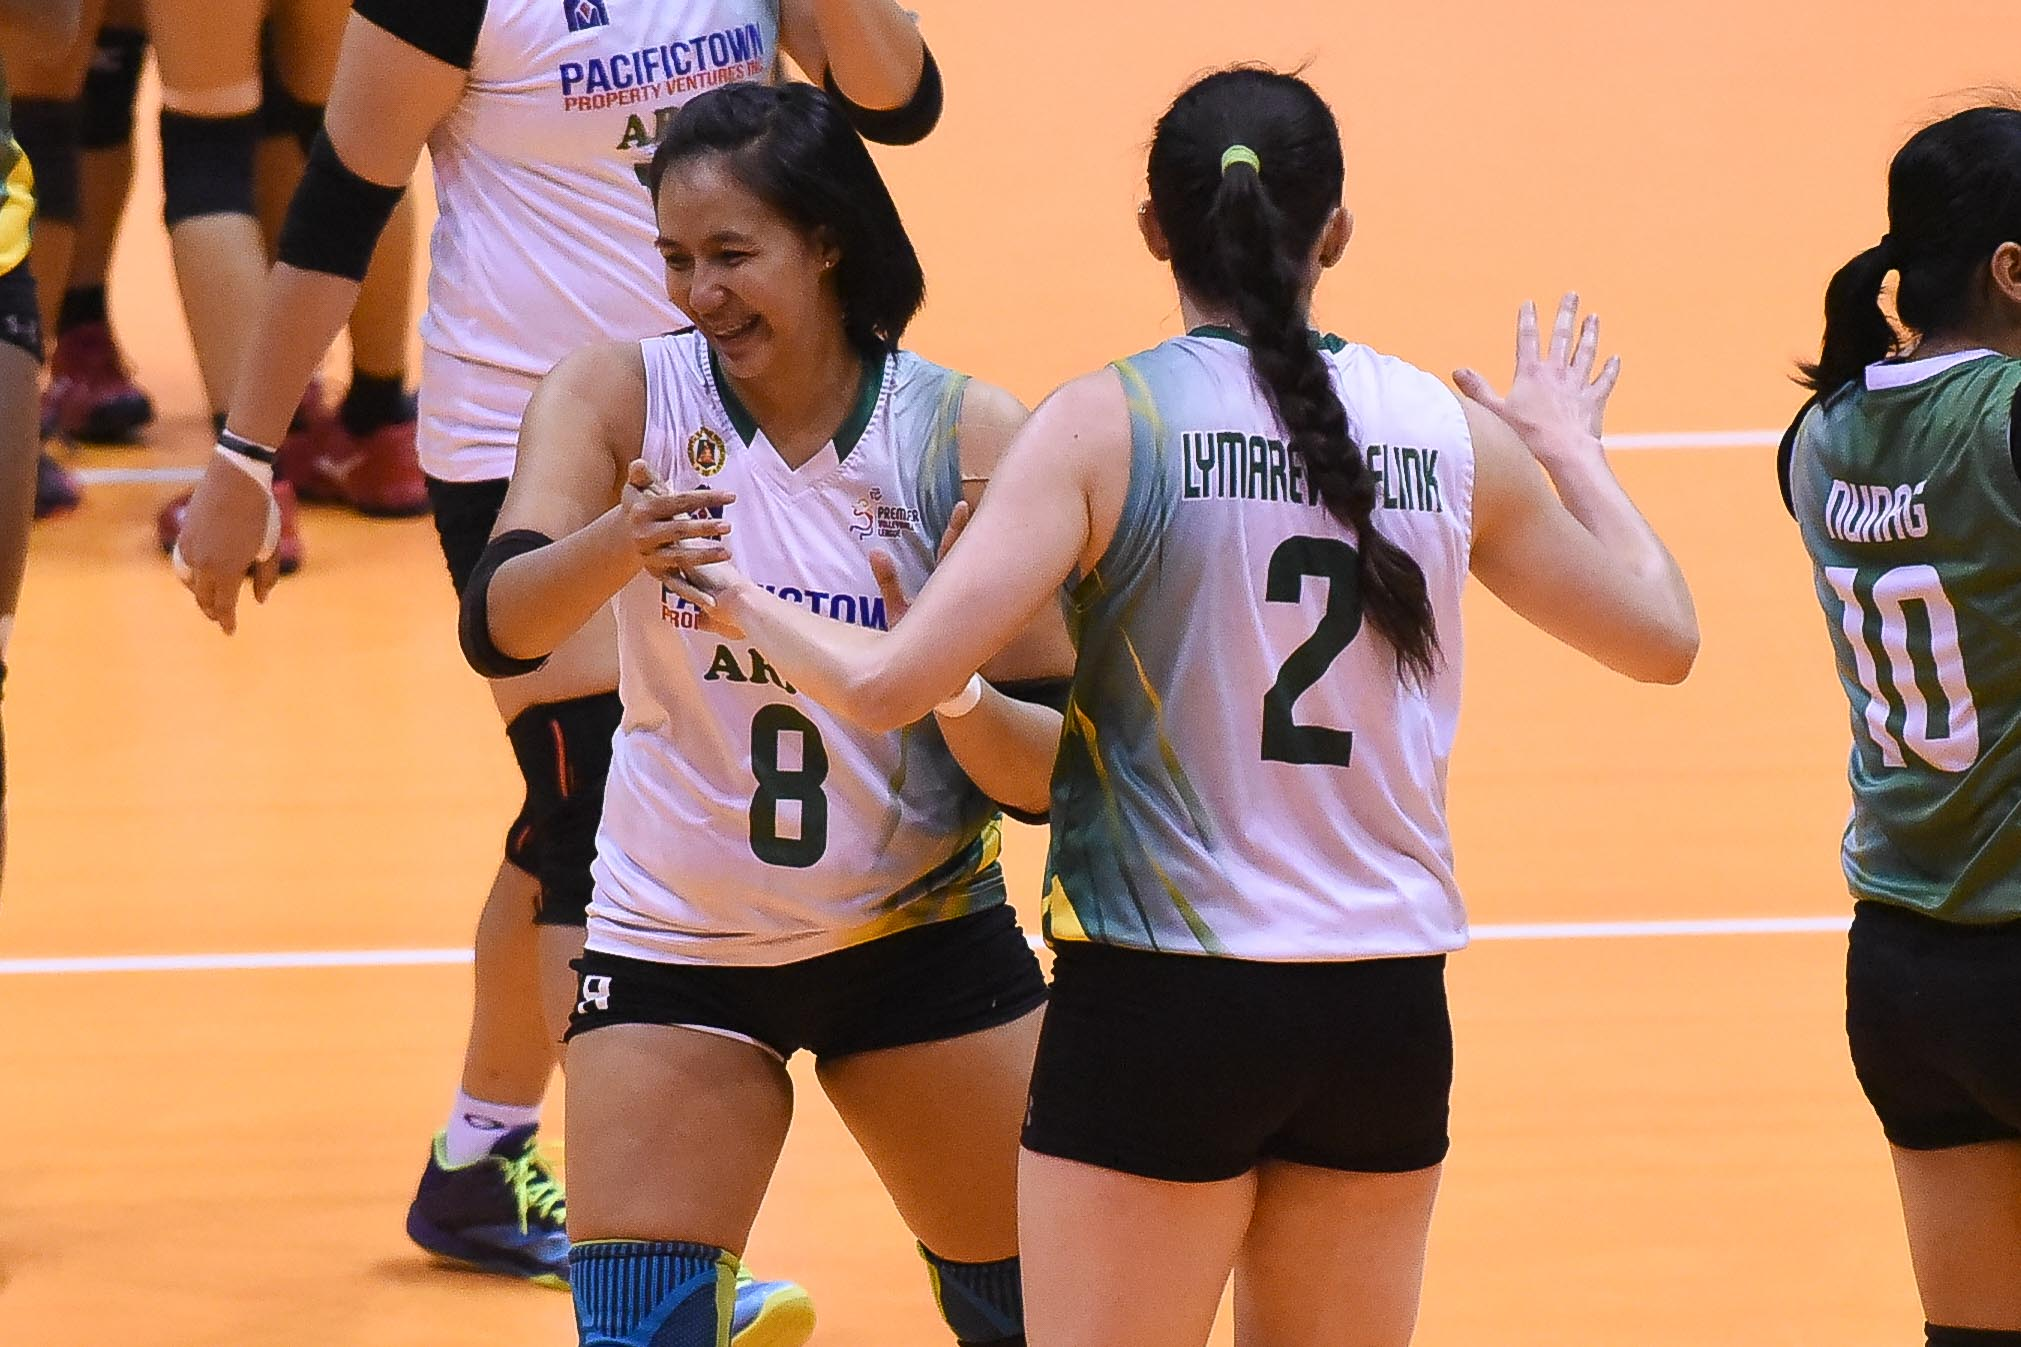 Tiebreaker Times Jovelyn Gonzaga heats up late as PacificTown-Army salvages bronze News PVL Volleyball  Sutadta Chuewulim Royse Tubino Perlas Lady Spikers Olena Lymareva-Flink Nicole Tiamzon Kungfu Reyes Jovelyn Gonzaga Jenelle Jordan Jem Ferrer Dzi Gervacio Apichat Kongsaiwat Alina Bicar 2019 PVL Season 2019 PVL Reinforced Conference